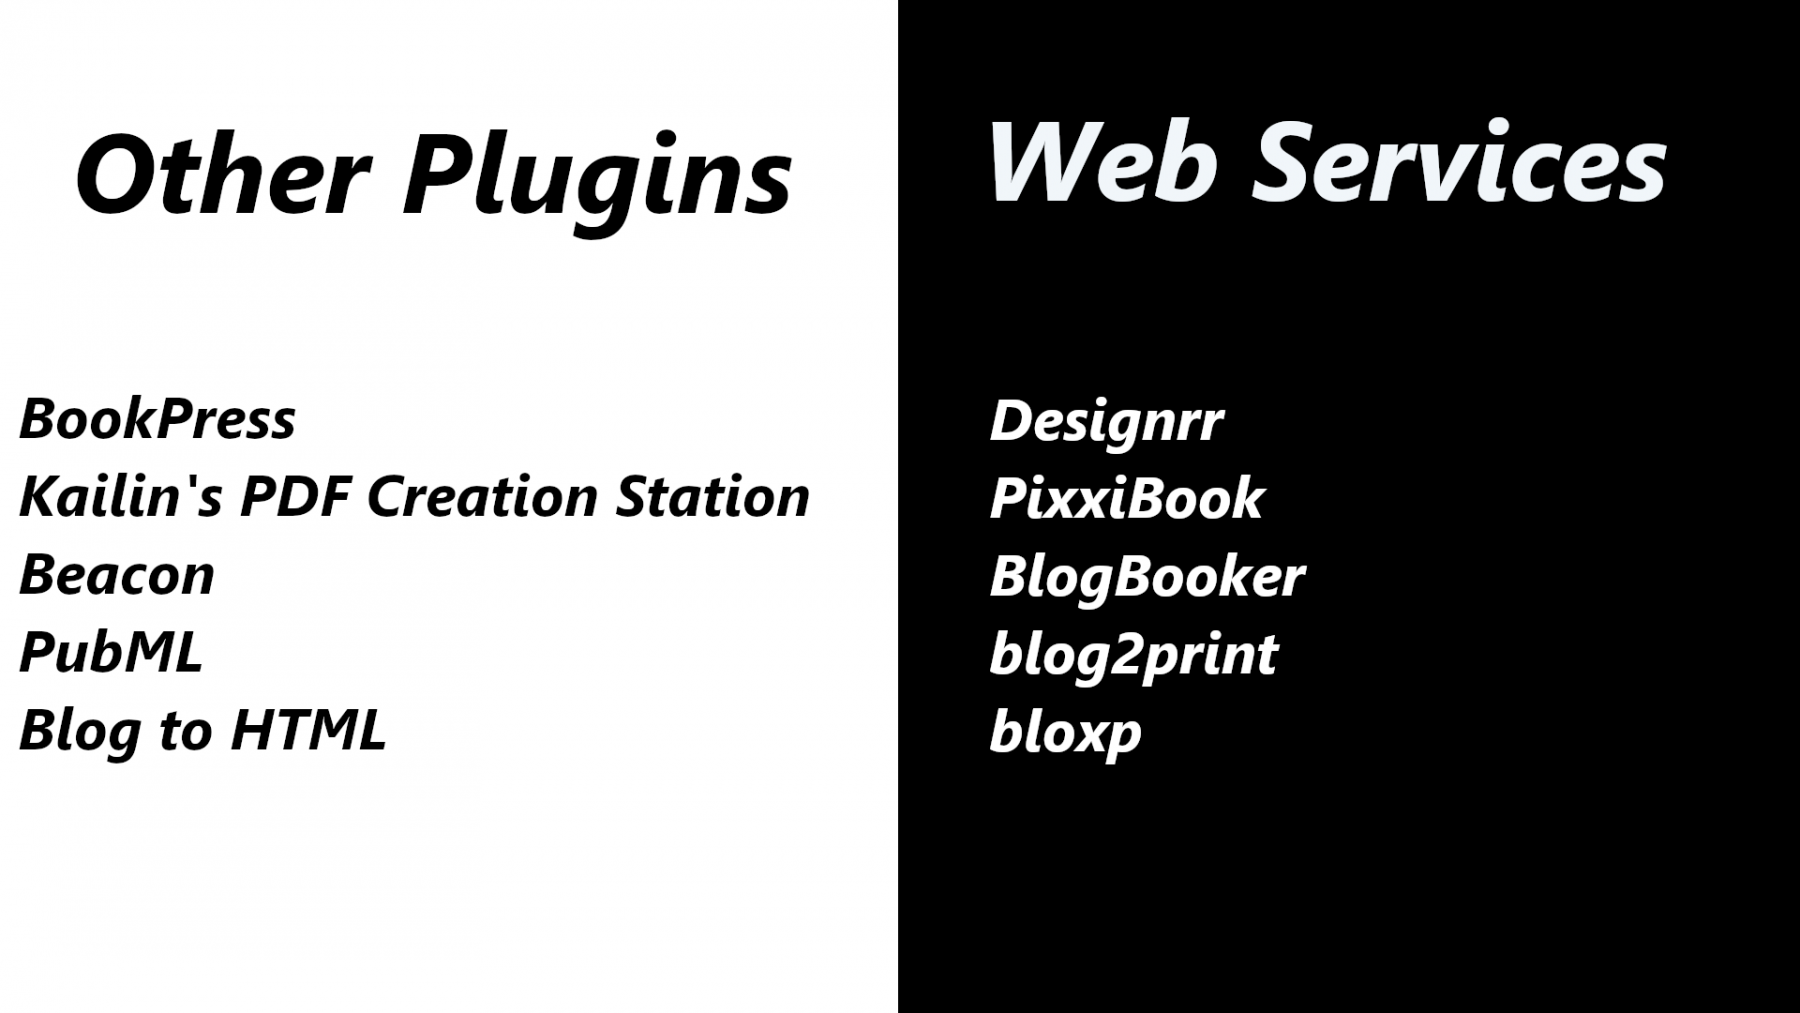 Other Plugins:BookPress, Kailin's PDF Creation Station, Beacon, PubML, and Blog to HTML. Web services:  Designrr, PixxiBook, BlogBooker, blog2print, and bloxp.